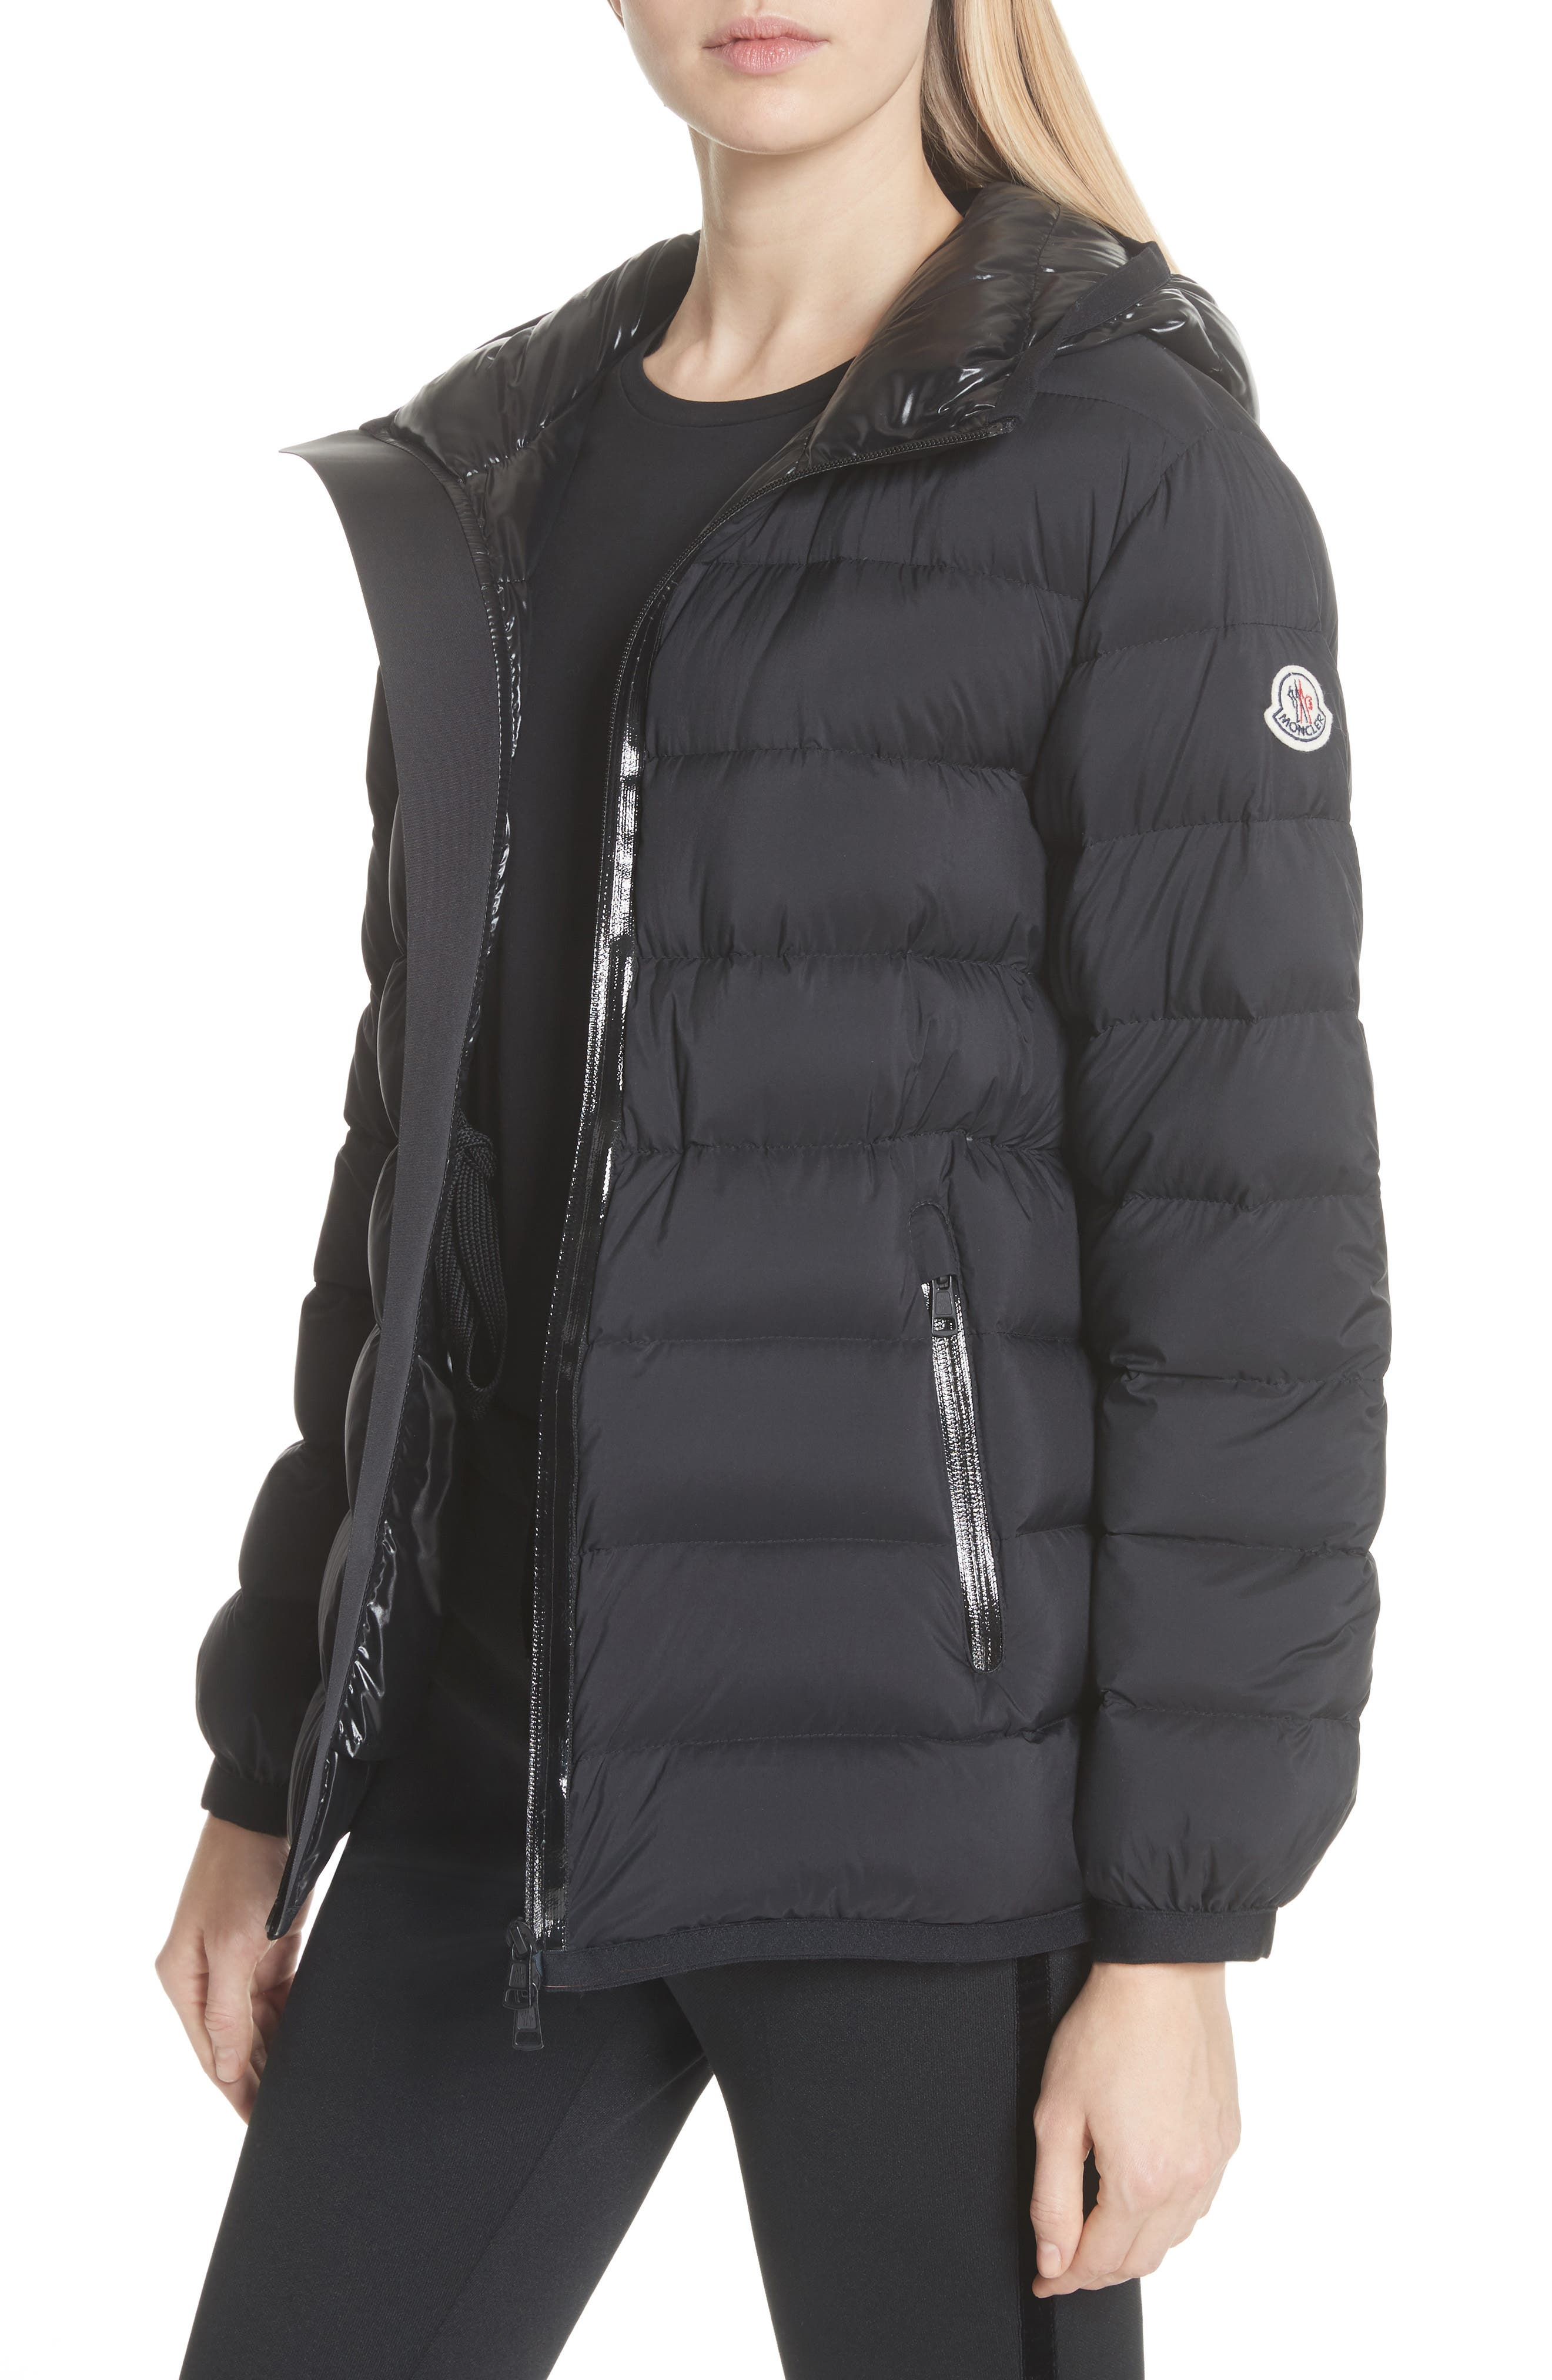 MONCLER, Goeland Quilted Down Jacket, Alternate thumbnail 5, color, 001